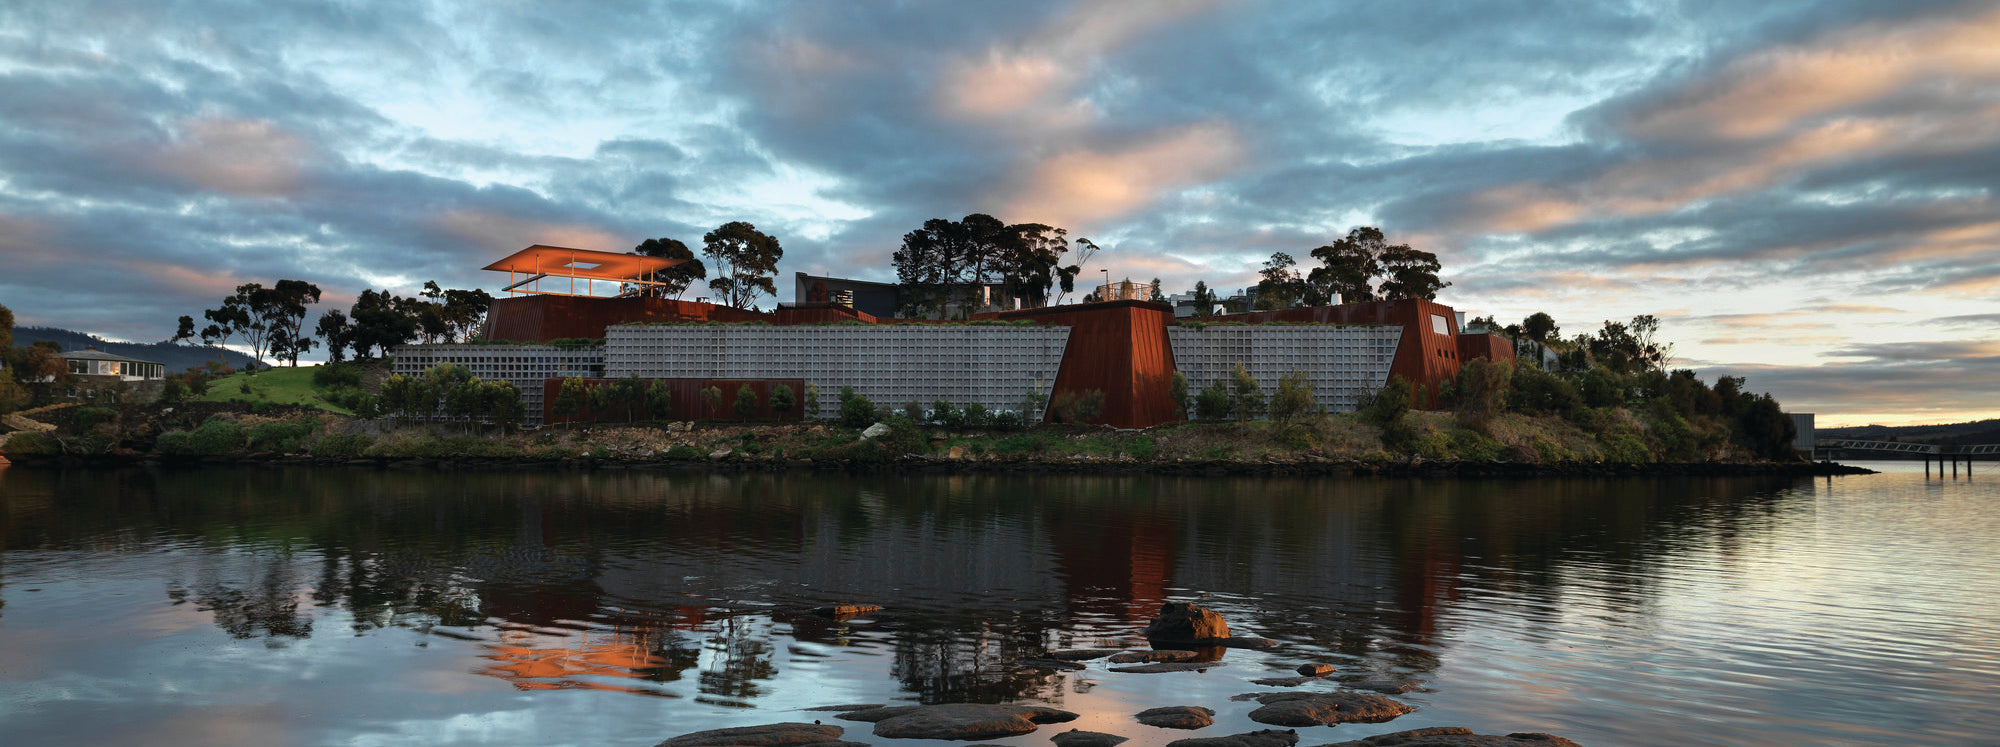 Mona Museum of old and new art tourism tasmania david walsh